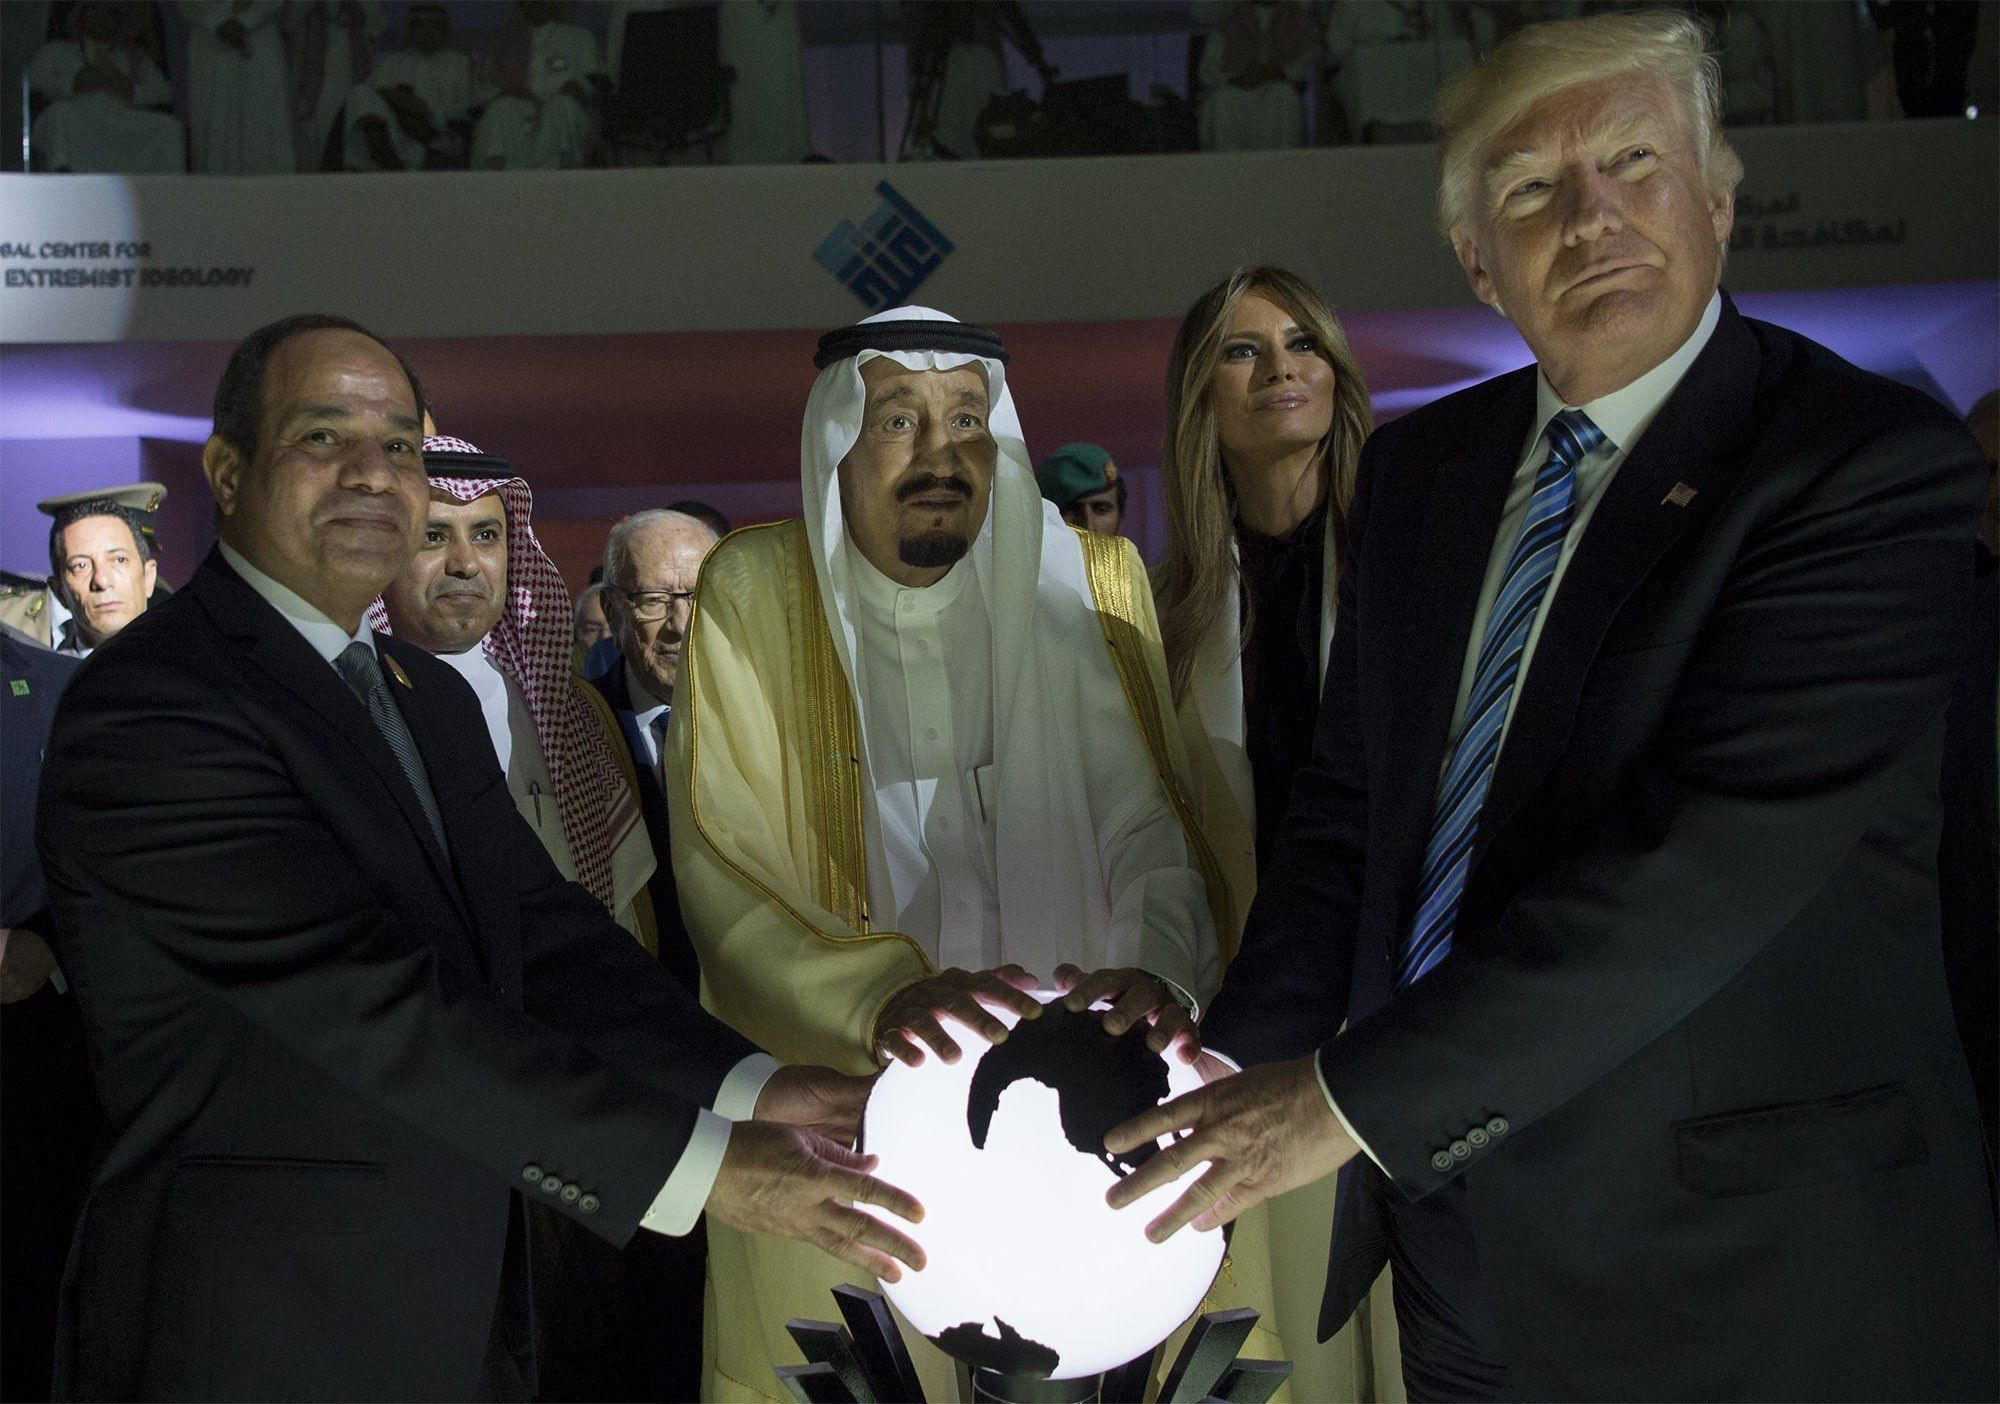 RIYADH, SAUDI ARABIA - MAY 21: (----EDITORIAL USE ONLY  MANDATORY CREDIT - 'BANDAR ALGALOUD / SAUDI ROYAL COUNCIL / HANDOUT' - NO MARKETING NO ADVERTISING CAMPAIGNS - DISTRIBUTED AS A SERVICE TO CLIENTS----)US President Donald Trump, US First lady Melania Trump (2nd R), Saudi Arabia's King Salman bin Abdulaziz al-Saud (2nd L) and Egyptian President Abdel Fattah el-Sisi (L) put their hands on an illuminated globe  during the inauguration ceremony of the Global Center for Combating Extremist Ideology in Riyadh, Saudi Arabia on May 21, 2017. (Photo by Bandar Algaloud / Saudi Royal Council / Handout/Anadolu Agency/Getty Images)